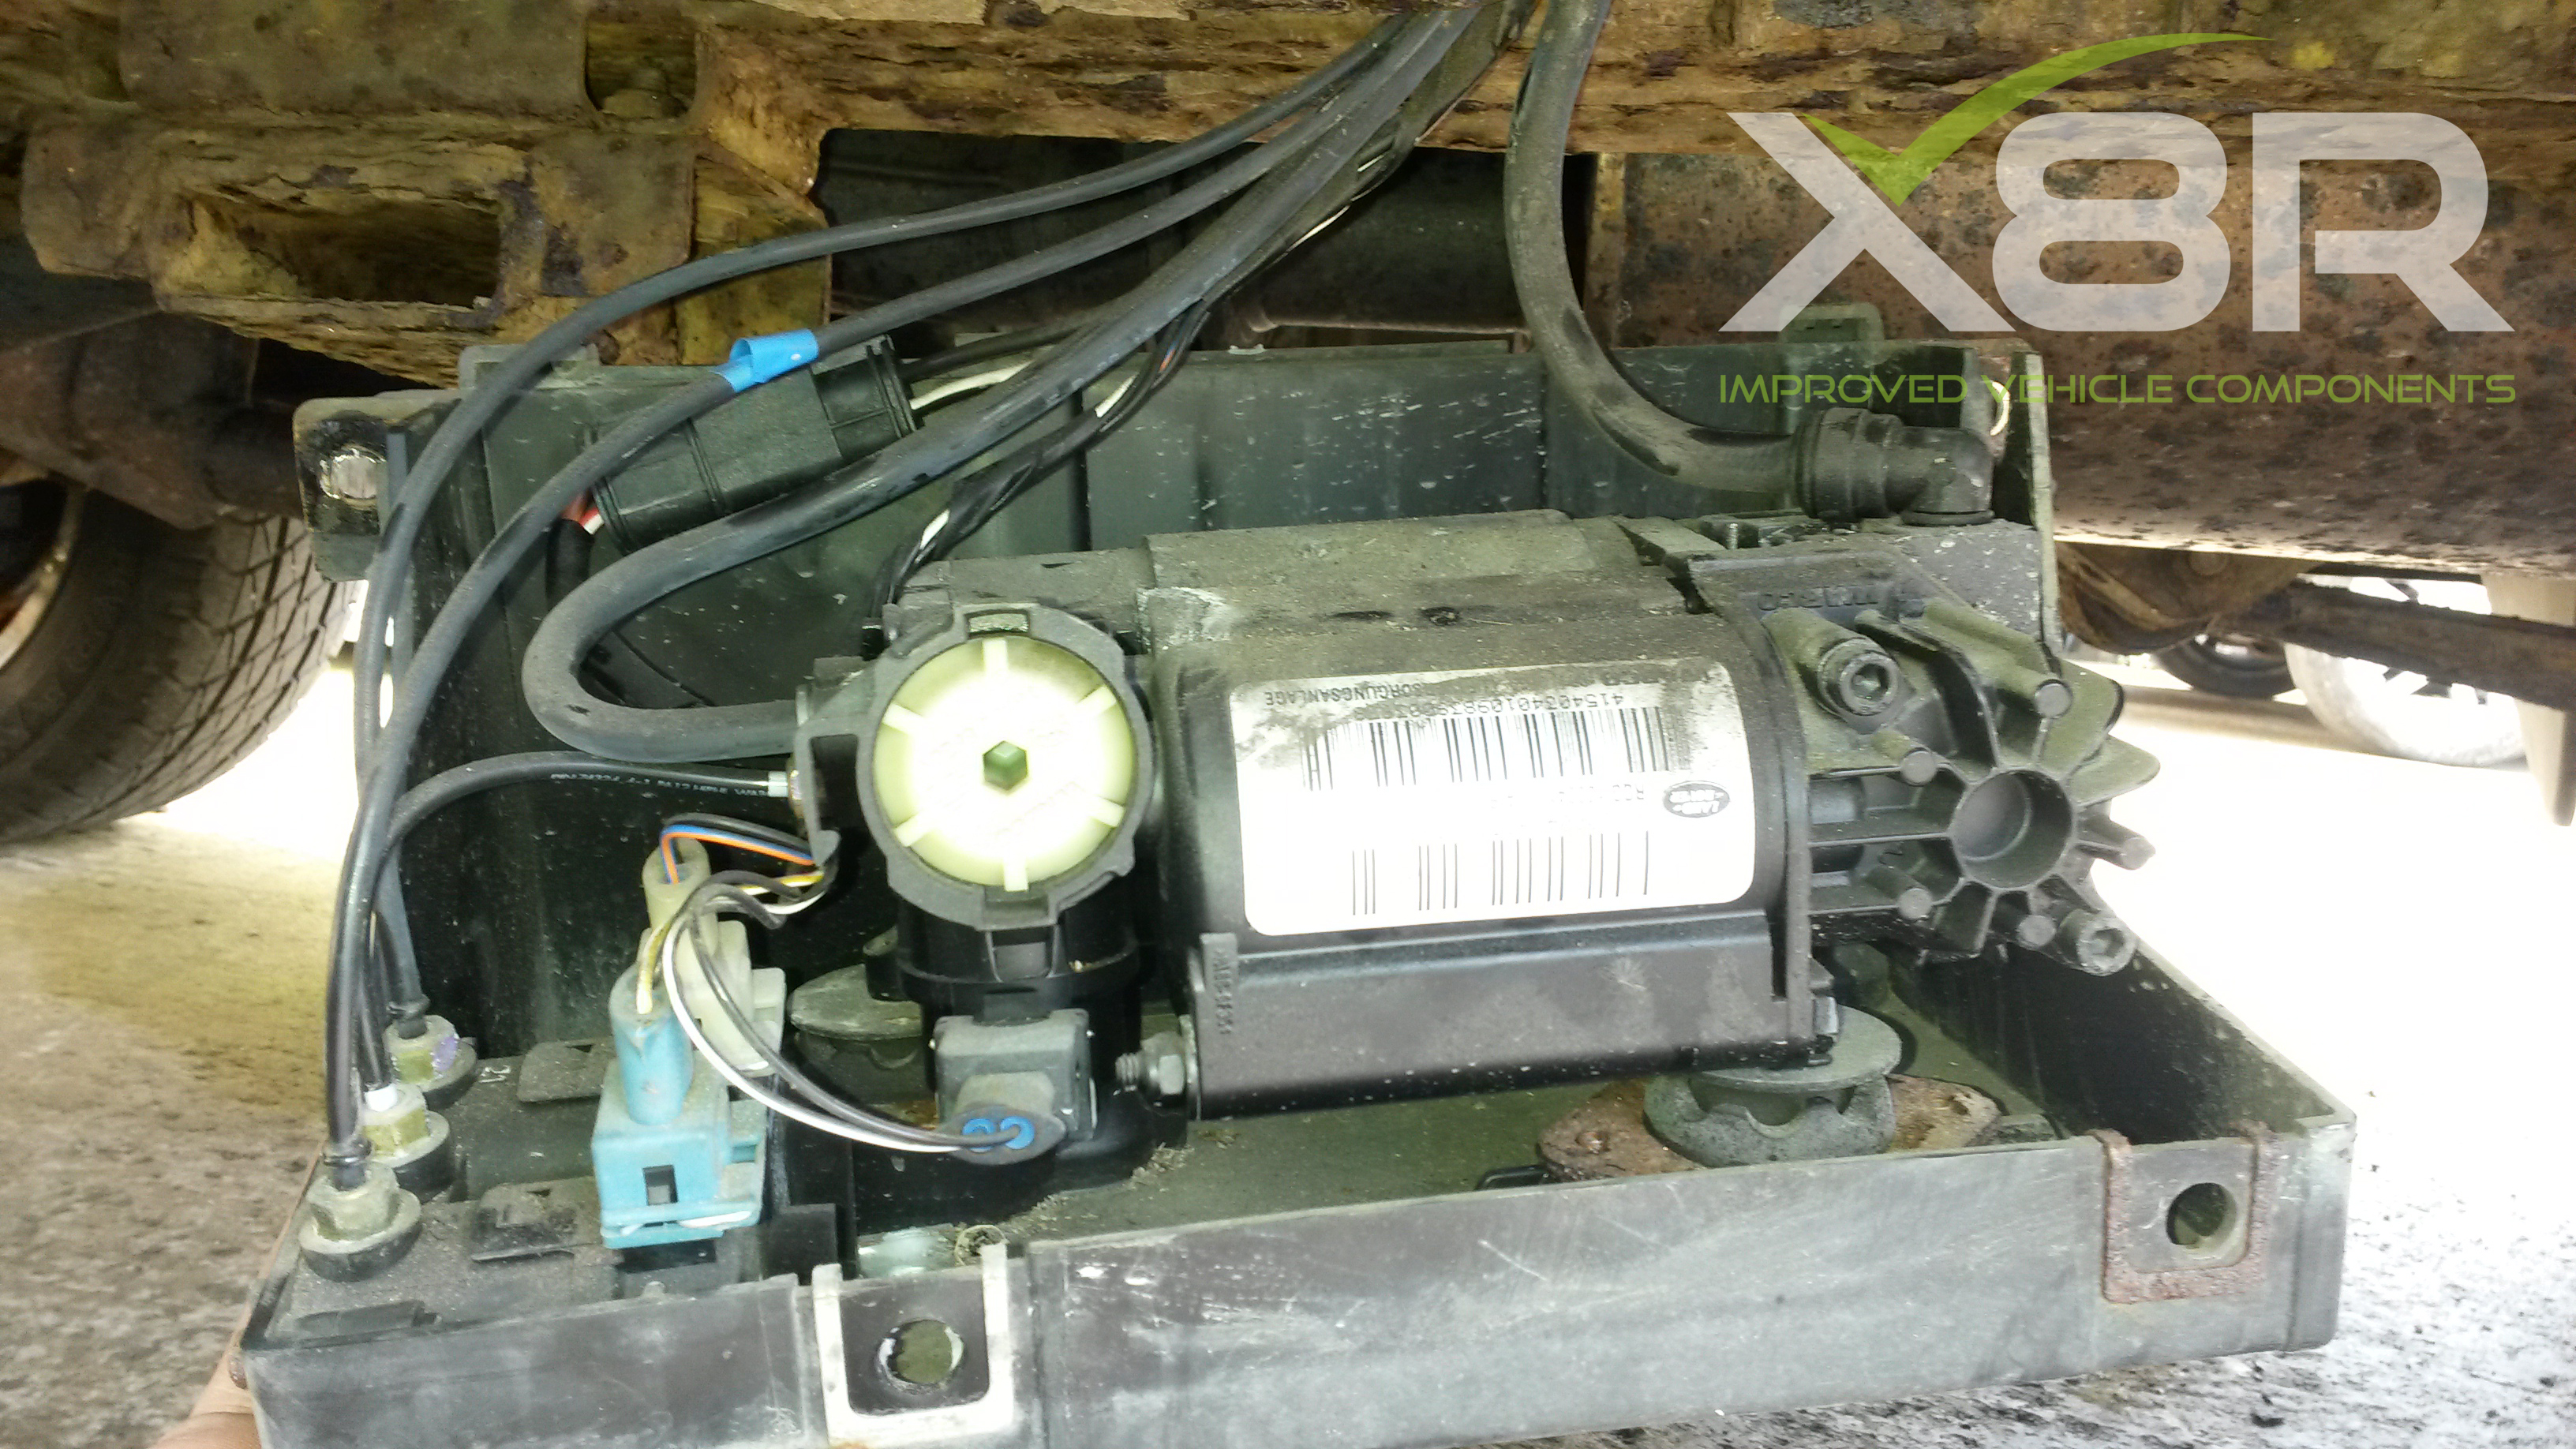 Picture of Land Rover Discovery 2 Air Suspension Wabco Compressor Removal.